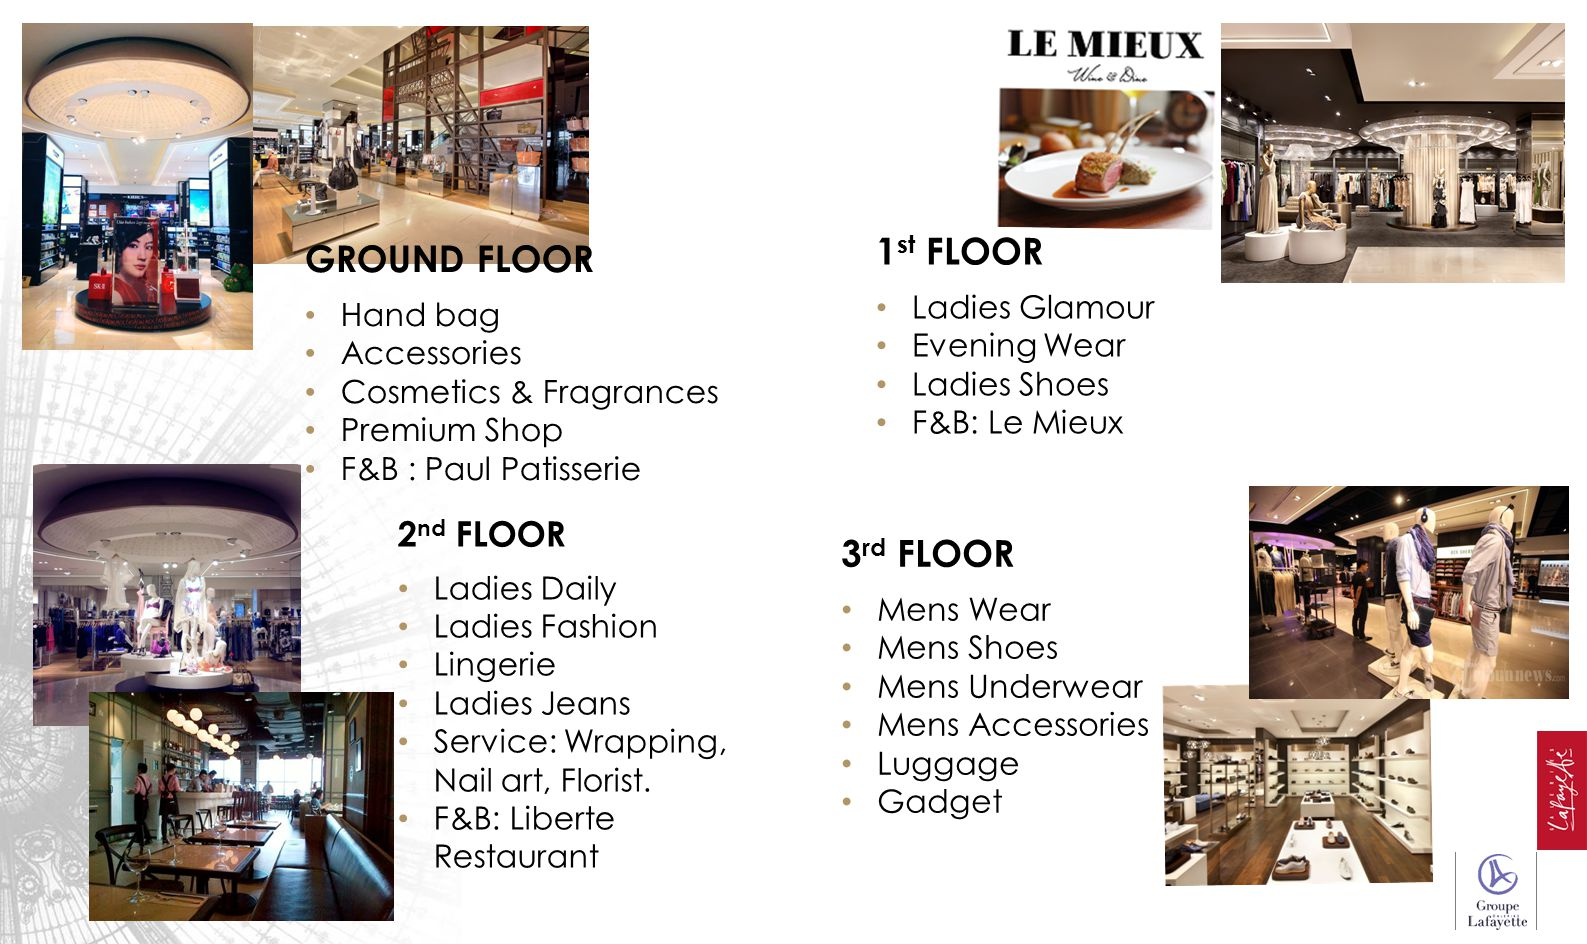 1st FLOOR GROUND FLOOR 3rd FLOOR 2nd FLOOR Ladies Glamour Hand bag